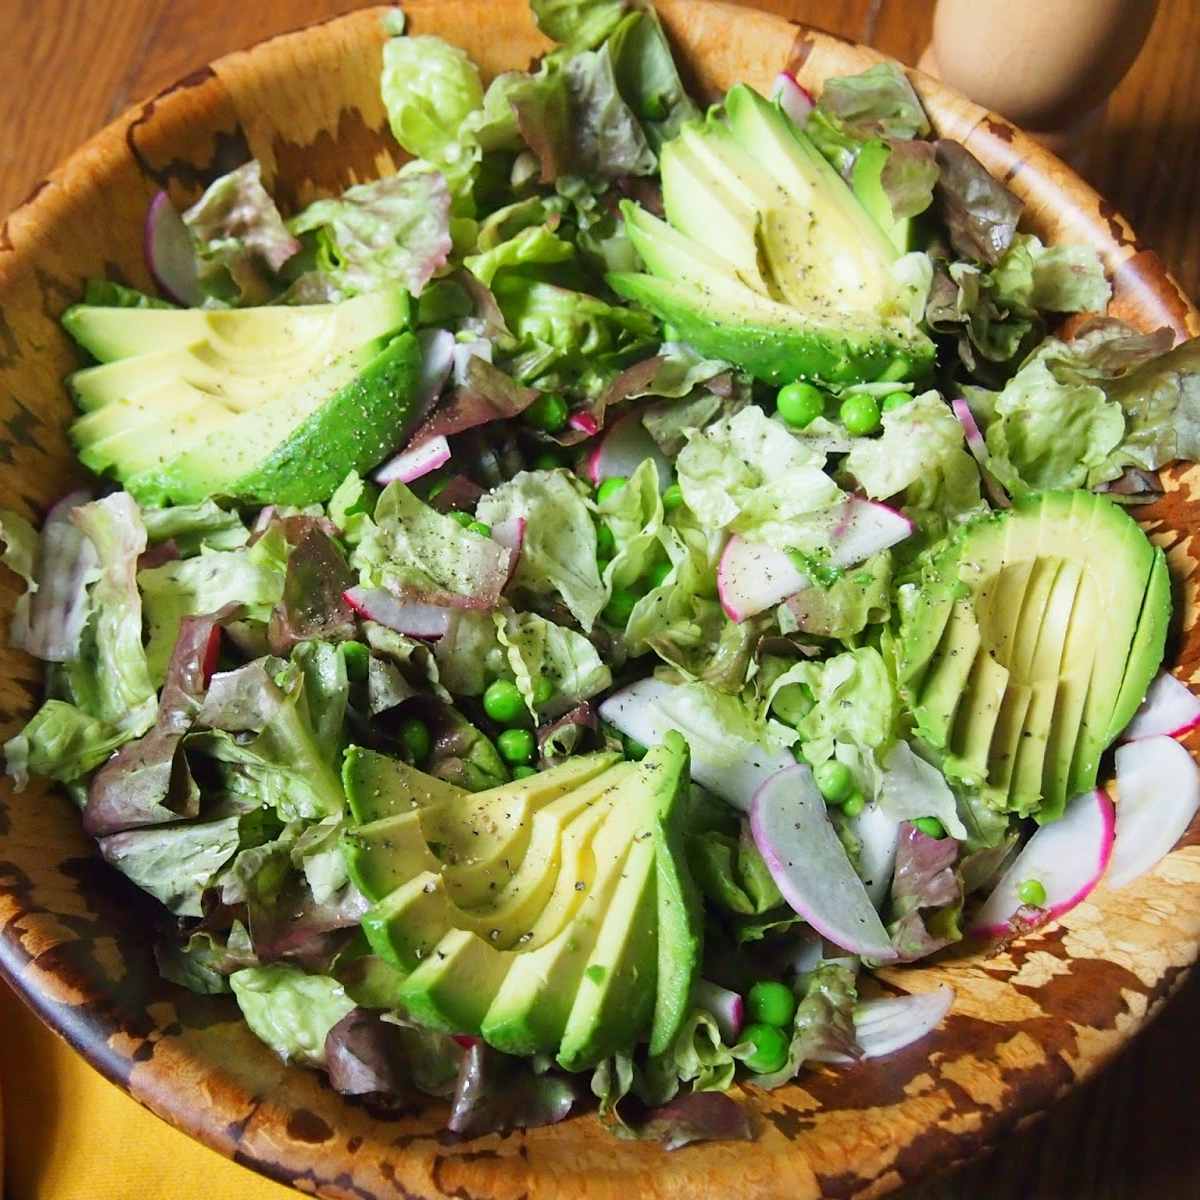 Spring Salad with Avocado, Radish and Lemon-Mint Dressing